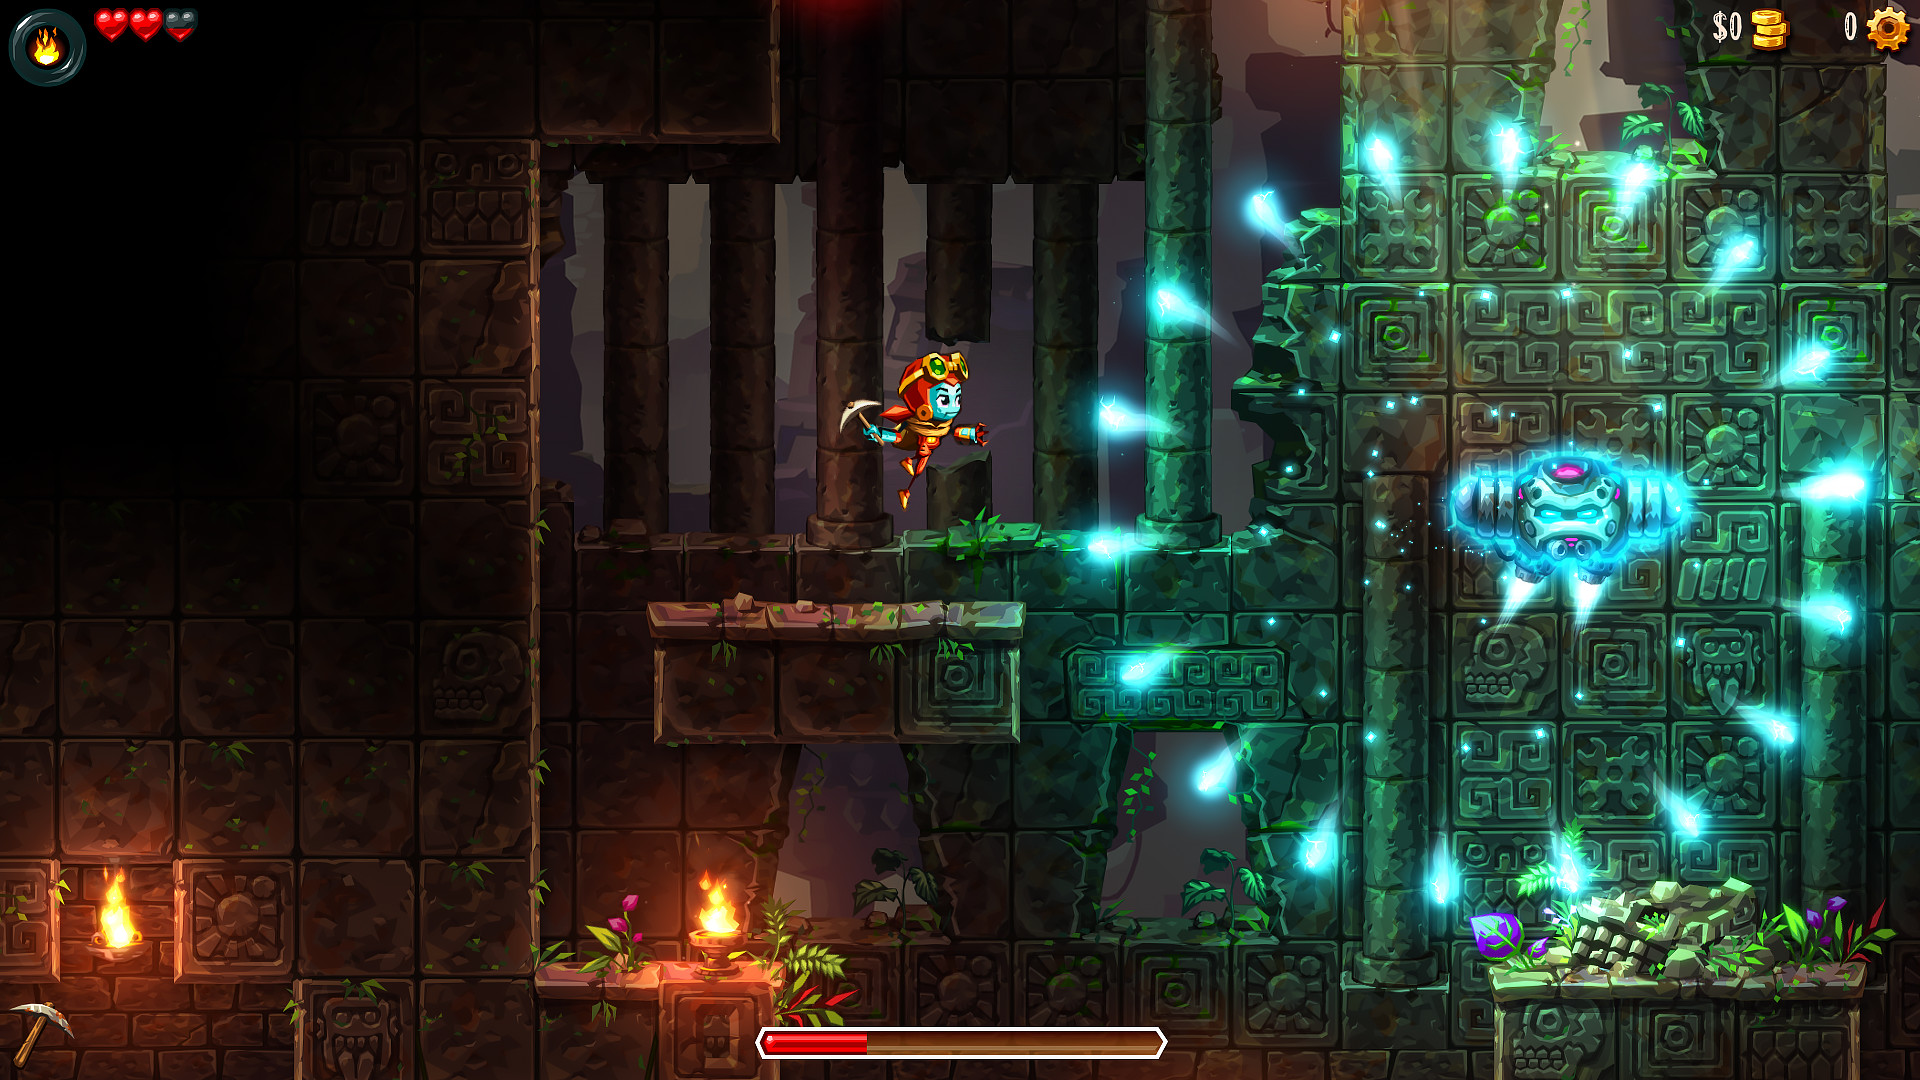 The folks behind the SteamWorld games say more are on the way, and I'll just take one more of each screenshot